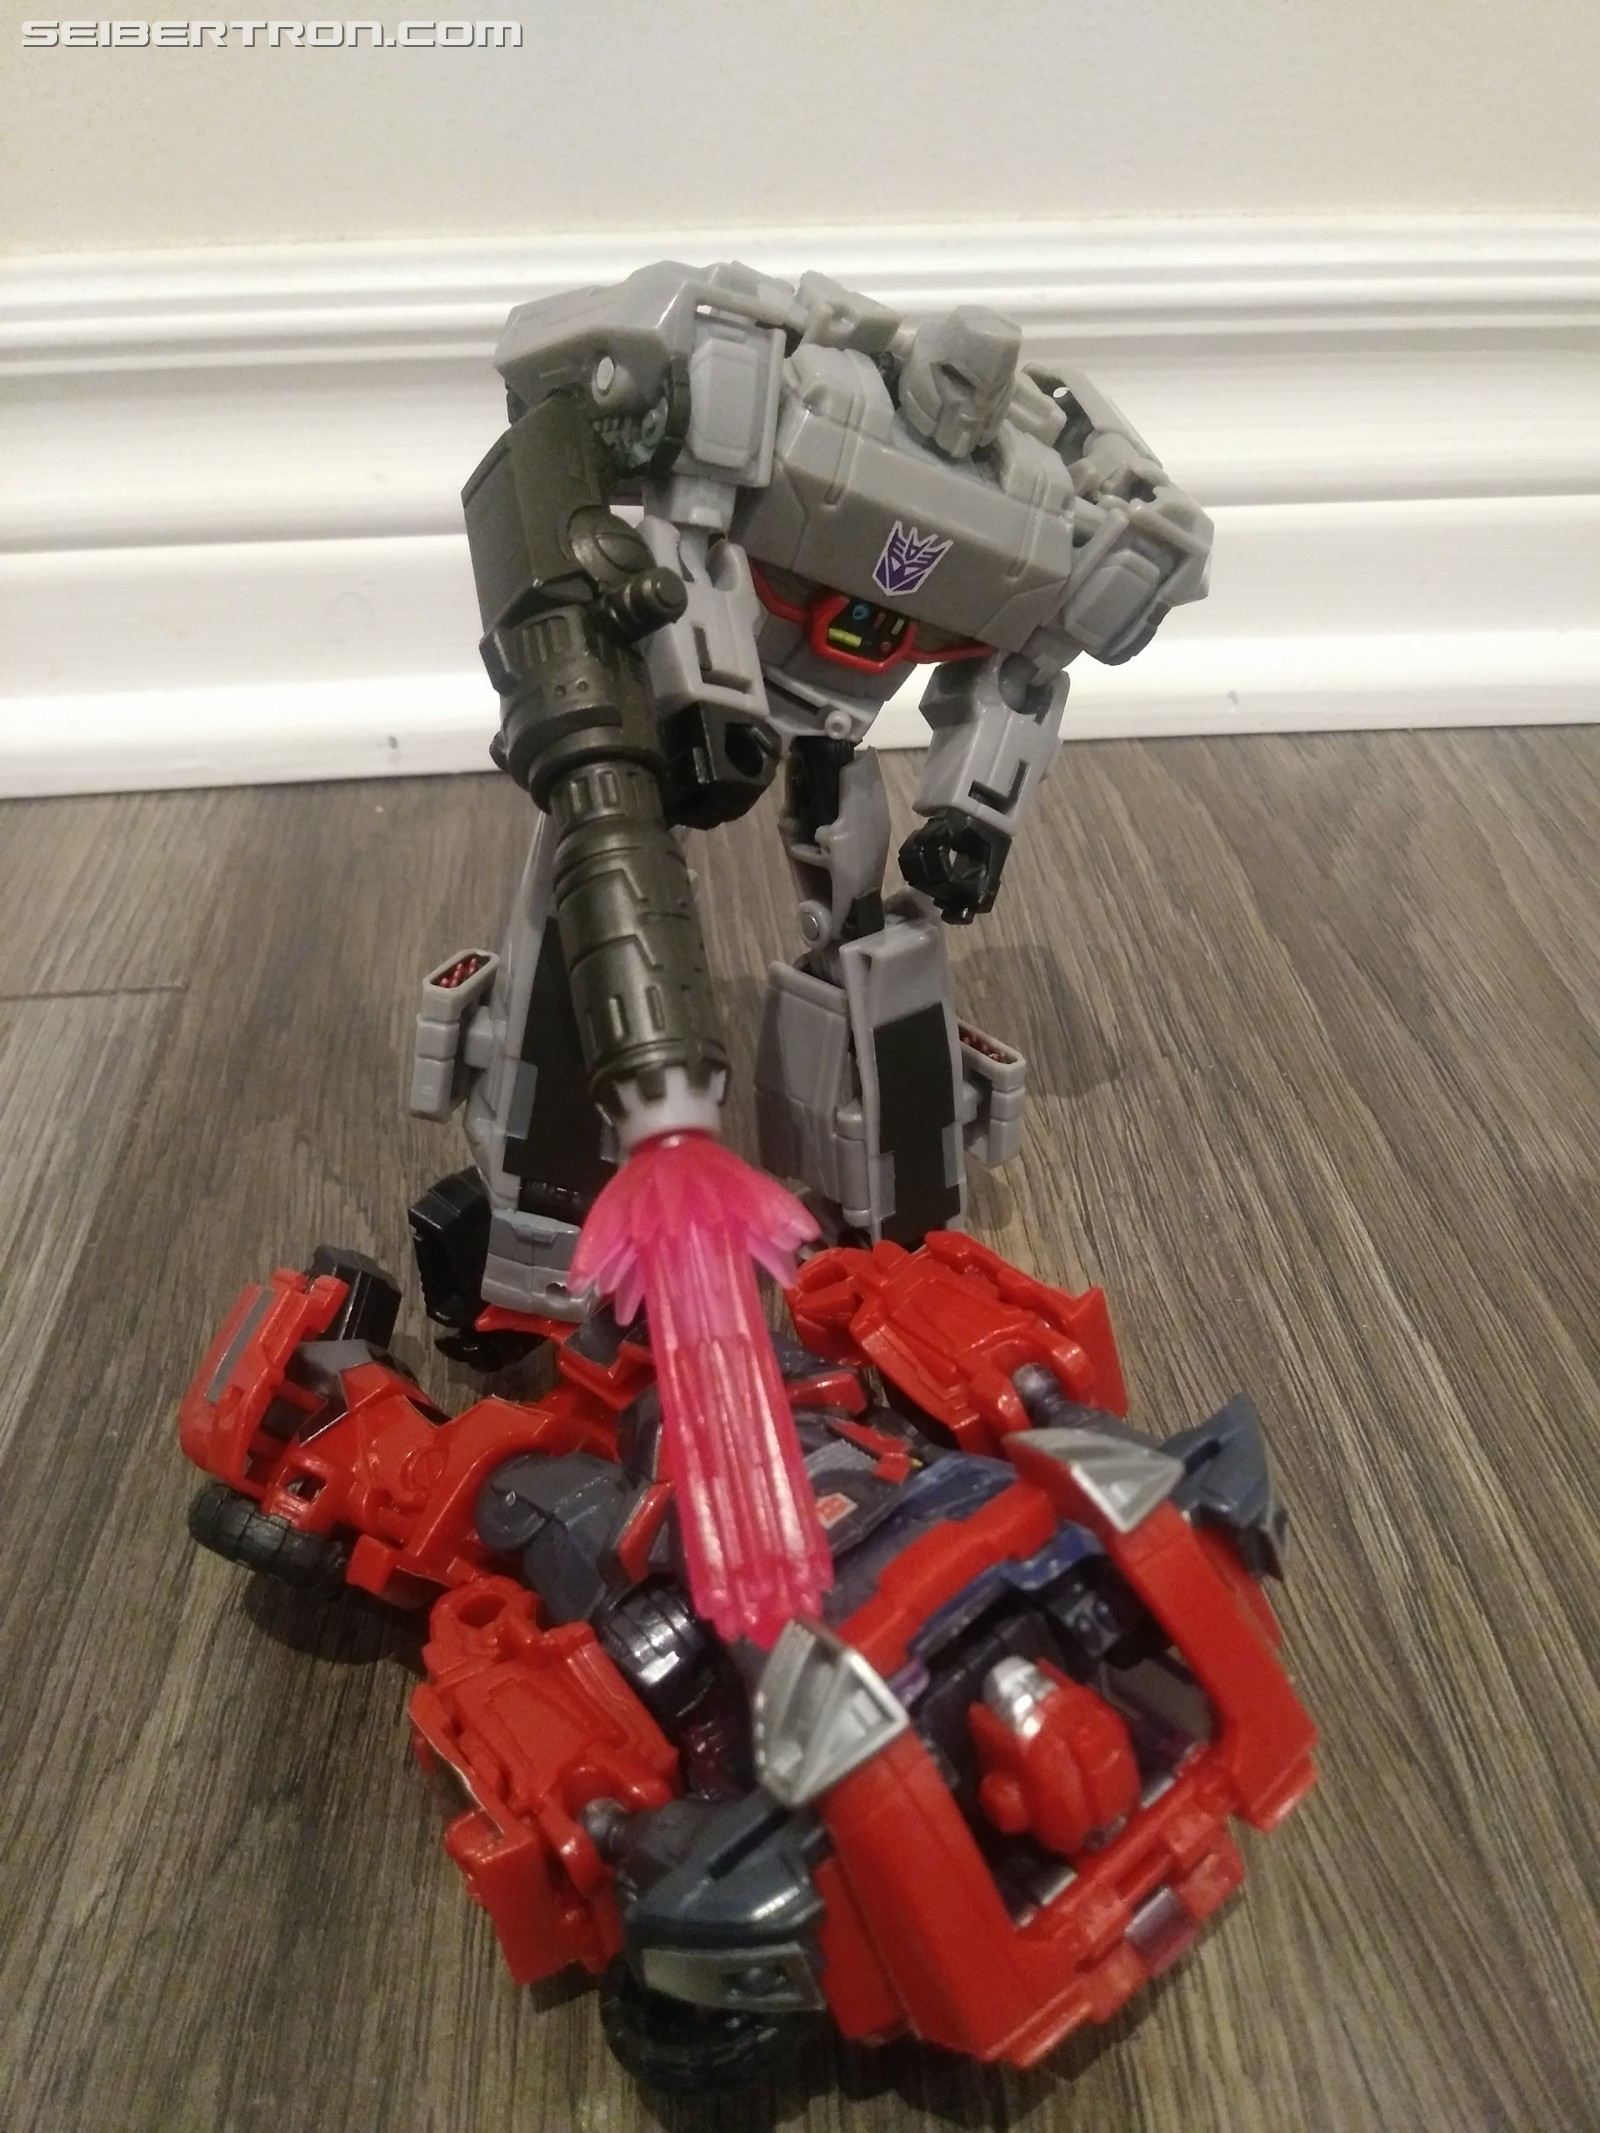 Transformers News: Pictorial Review of Deluxe Megatron from Transformers Cyberverse